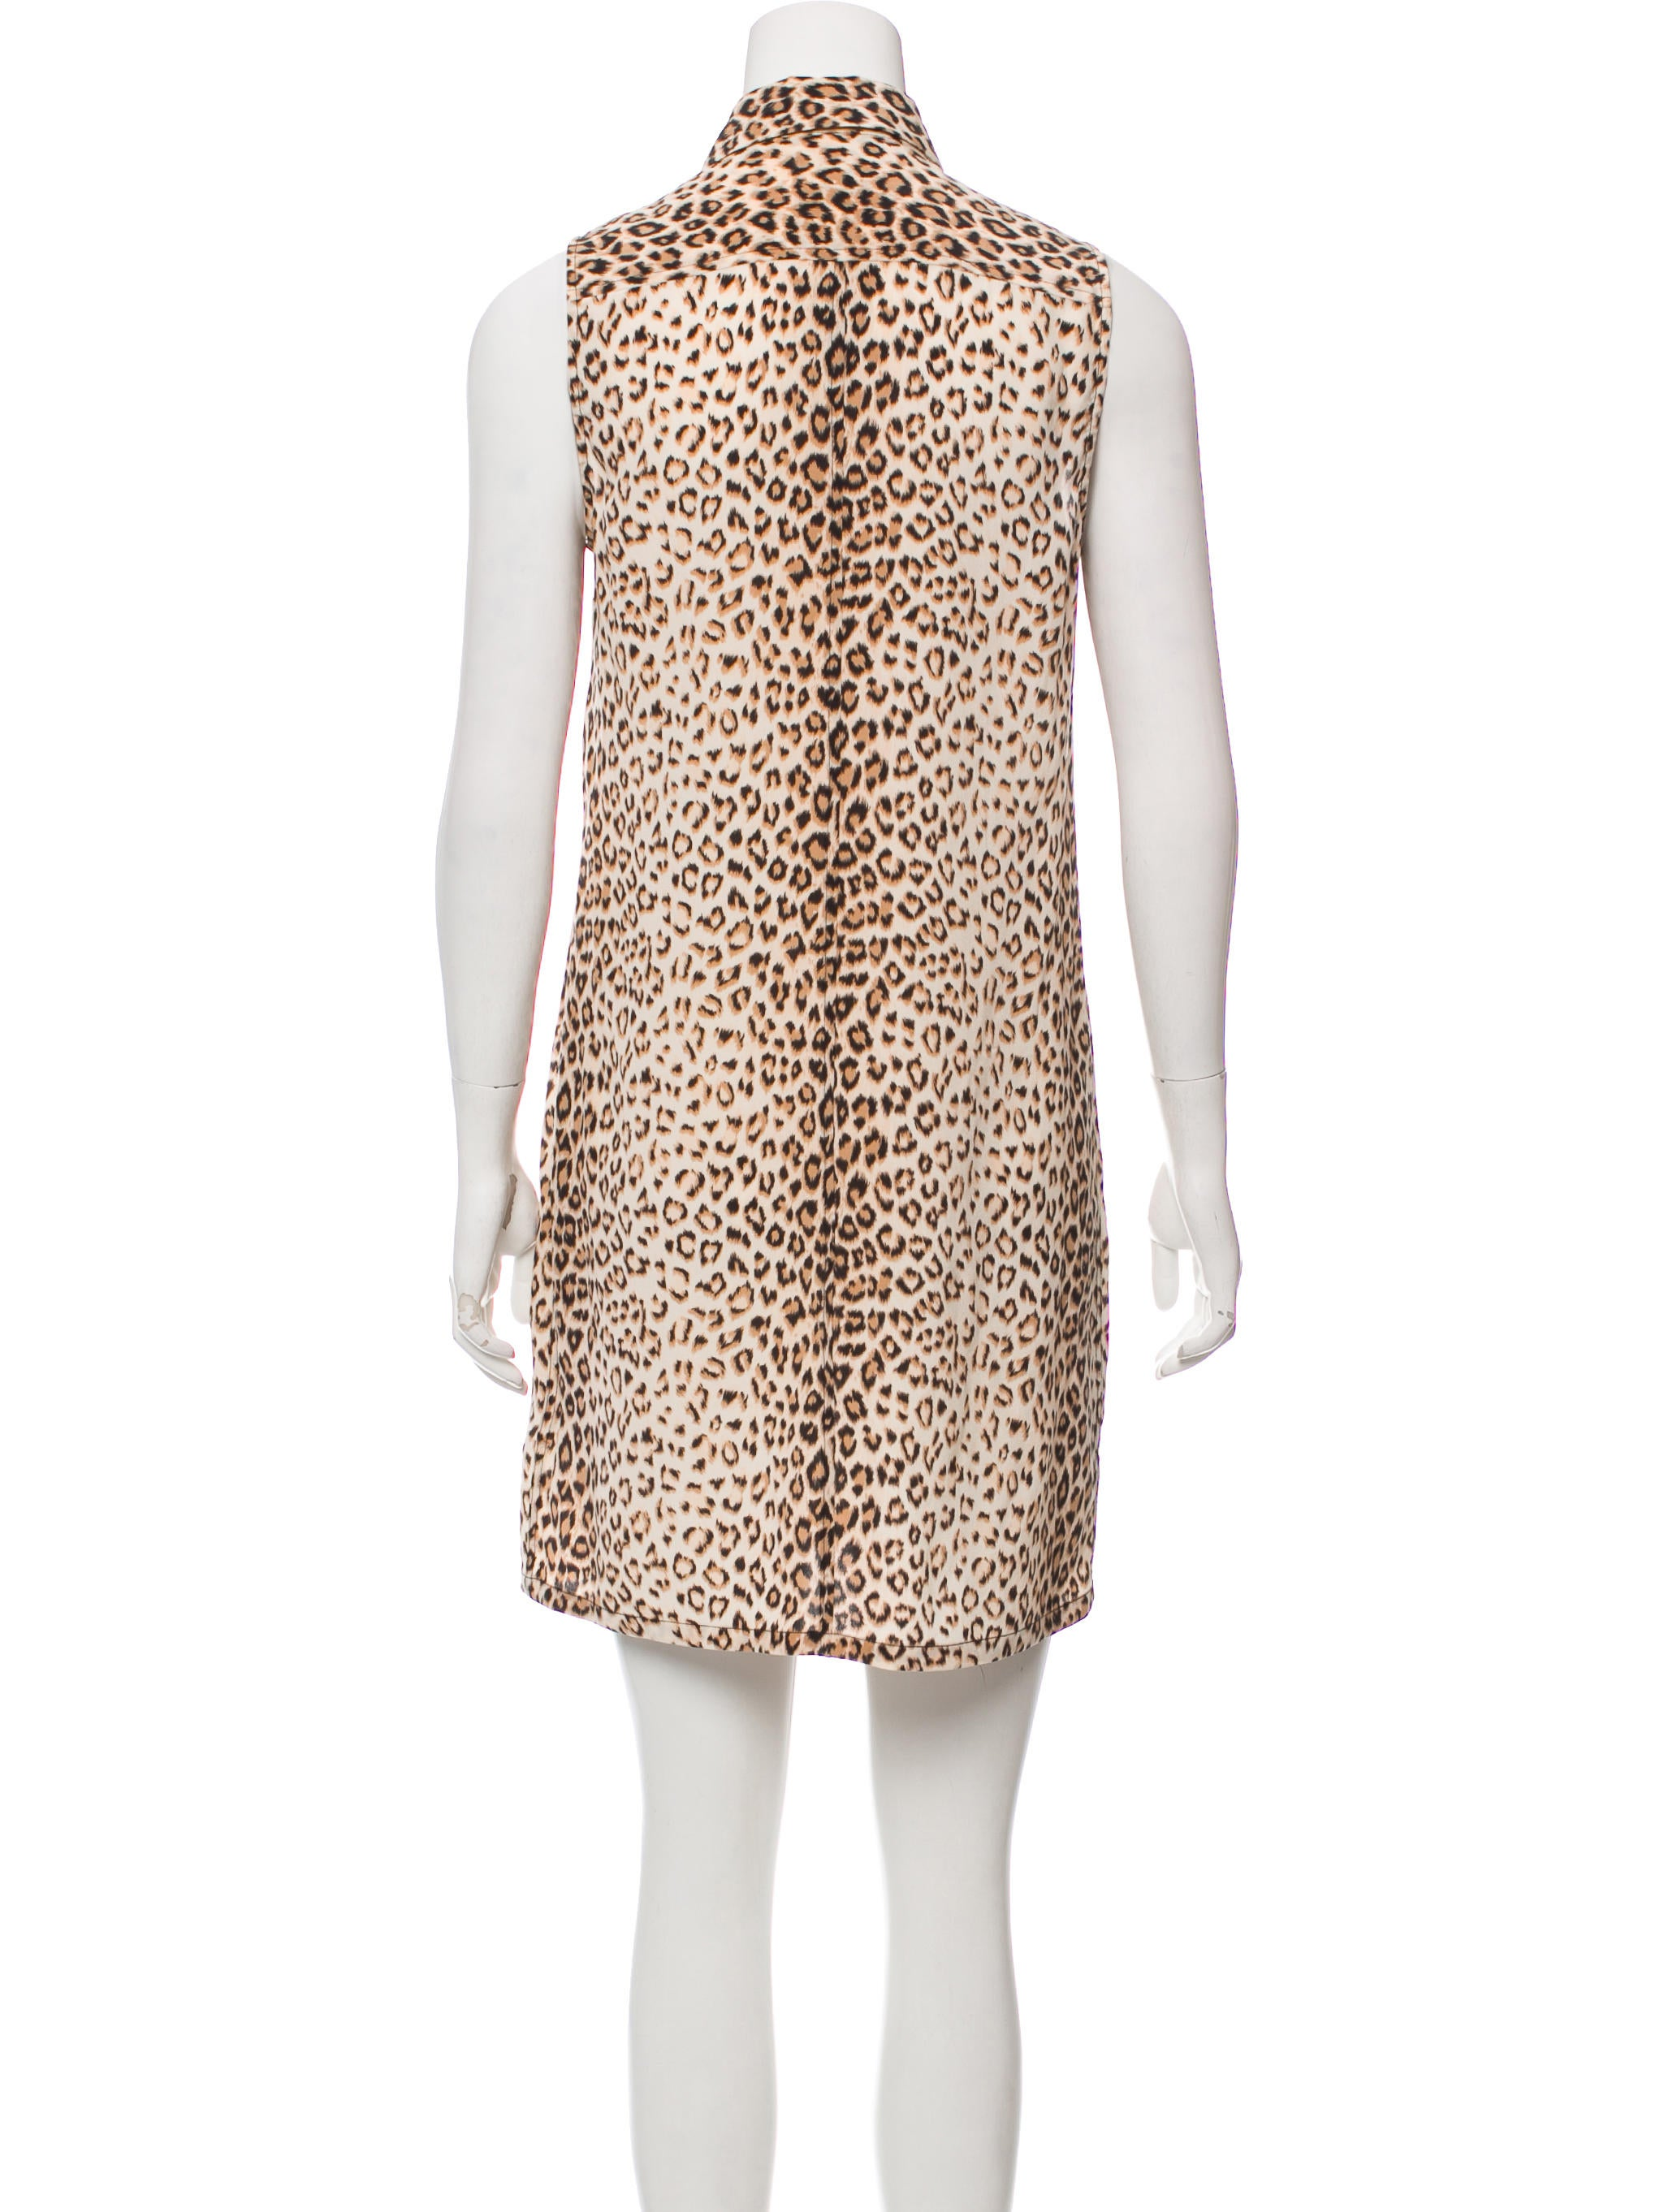 Equipment Leopard Silk Dress Clothing Weq39846 The Realreal